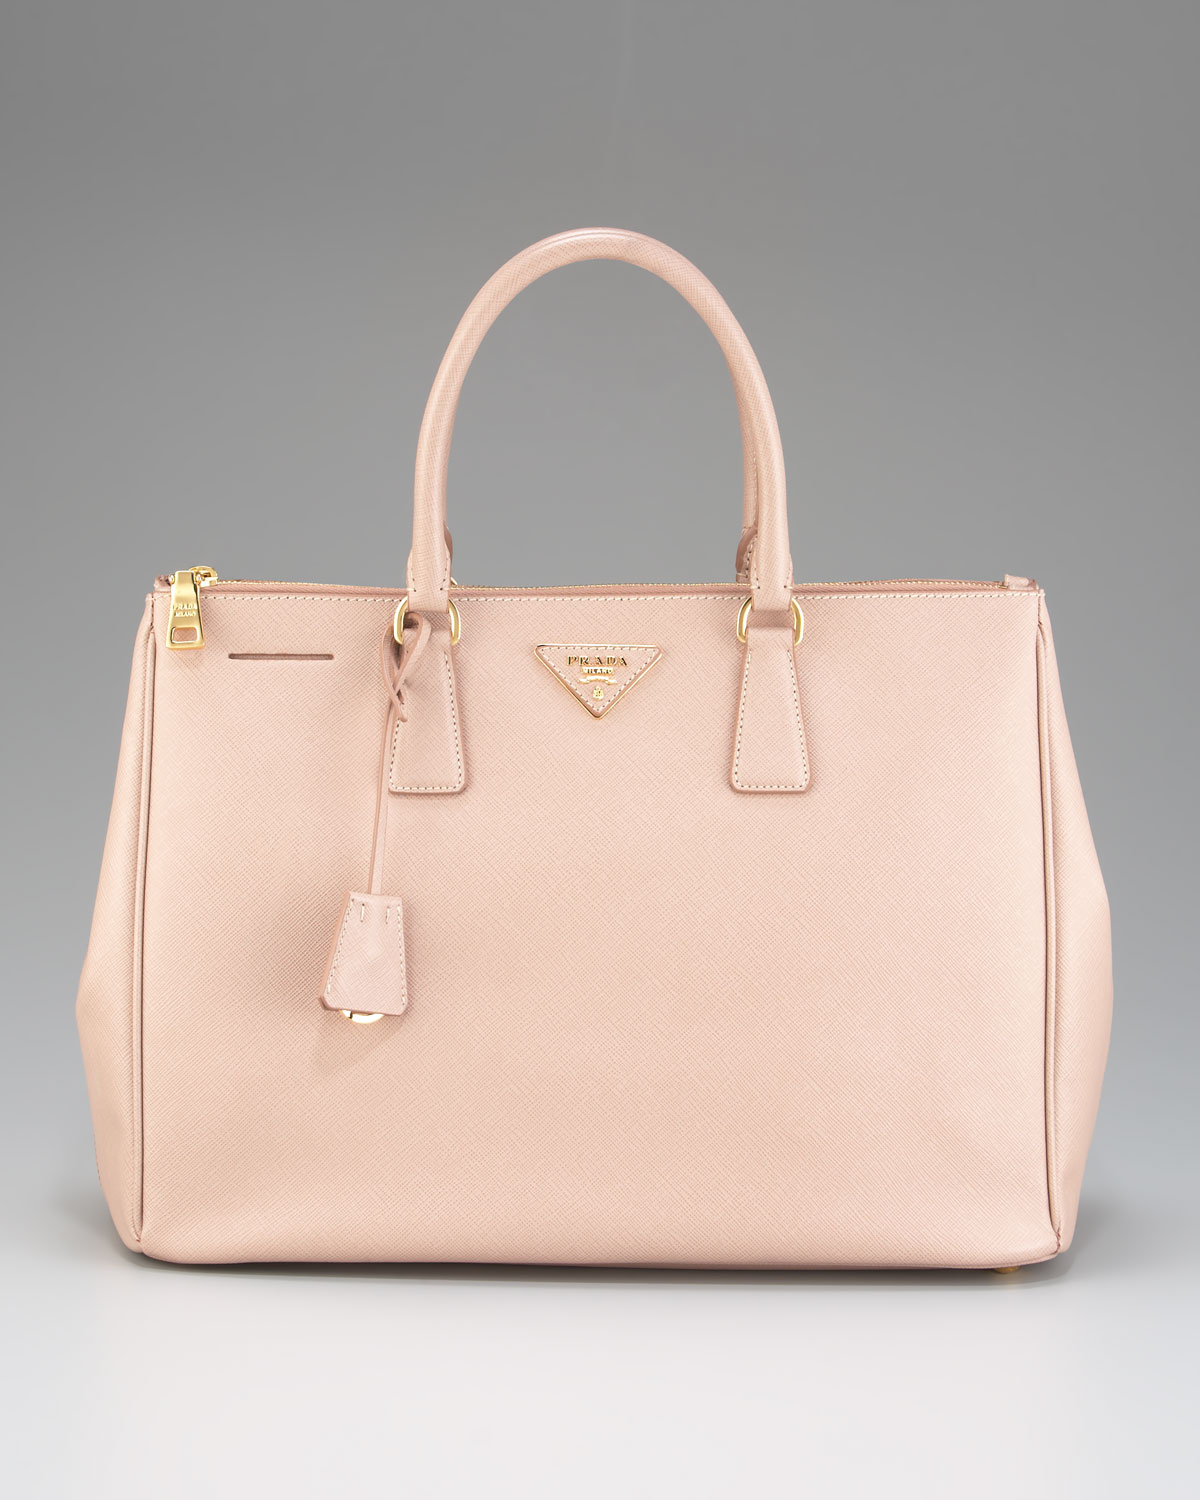 760734e45cb6 Lyst - Prada Saffiano Lux Executive Tote in Natural